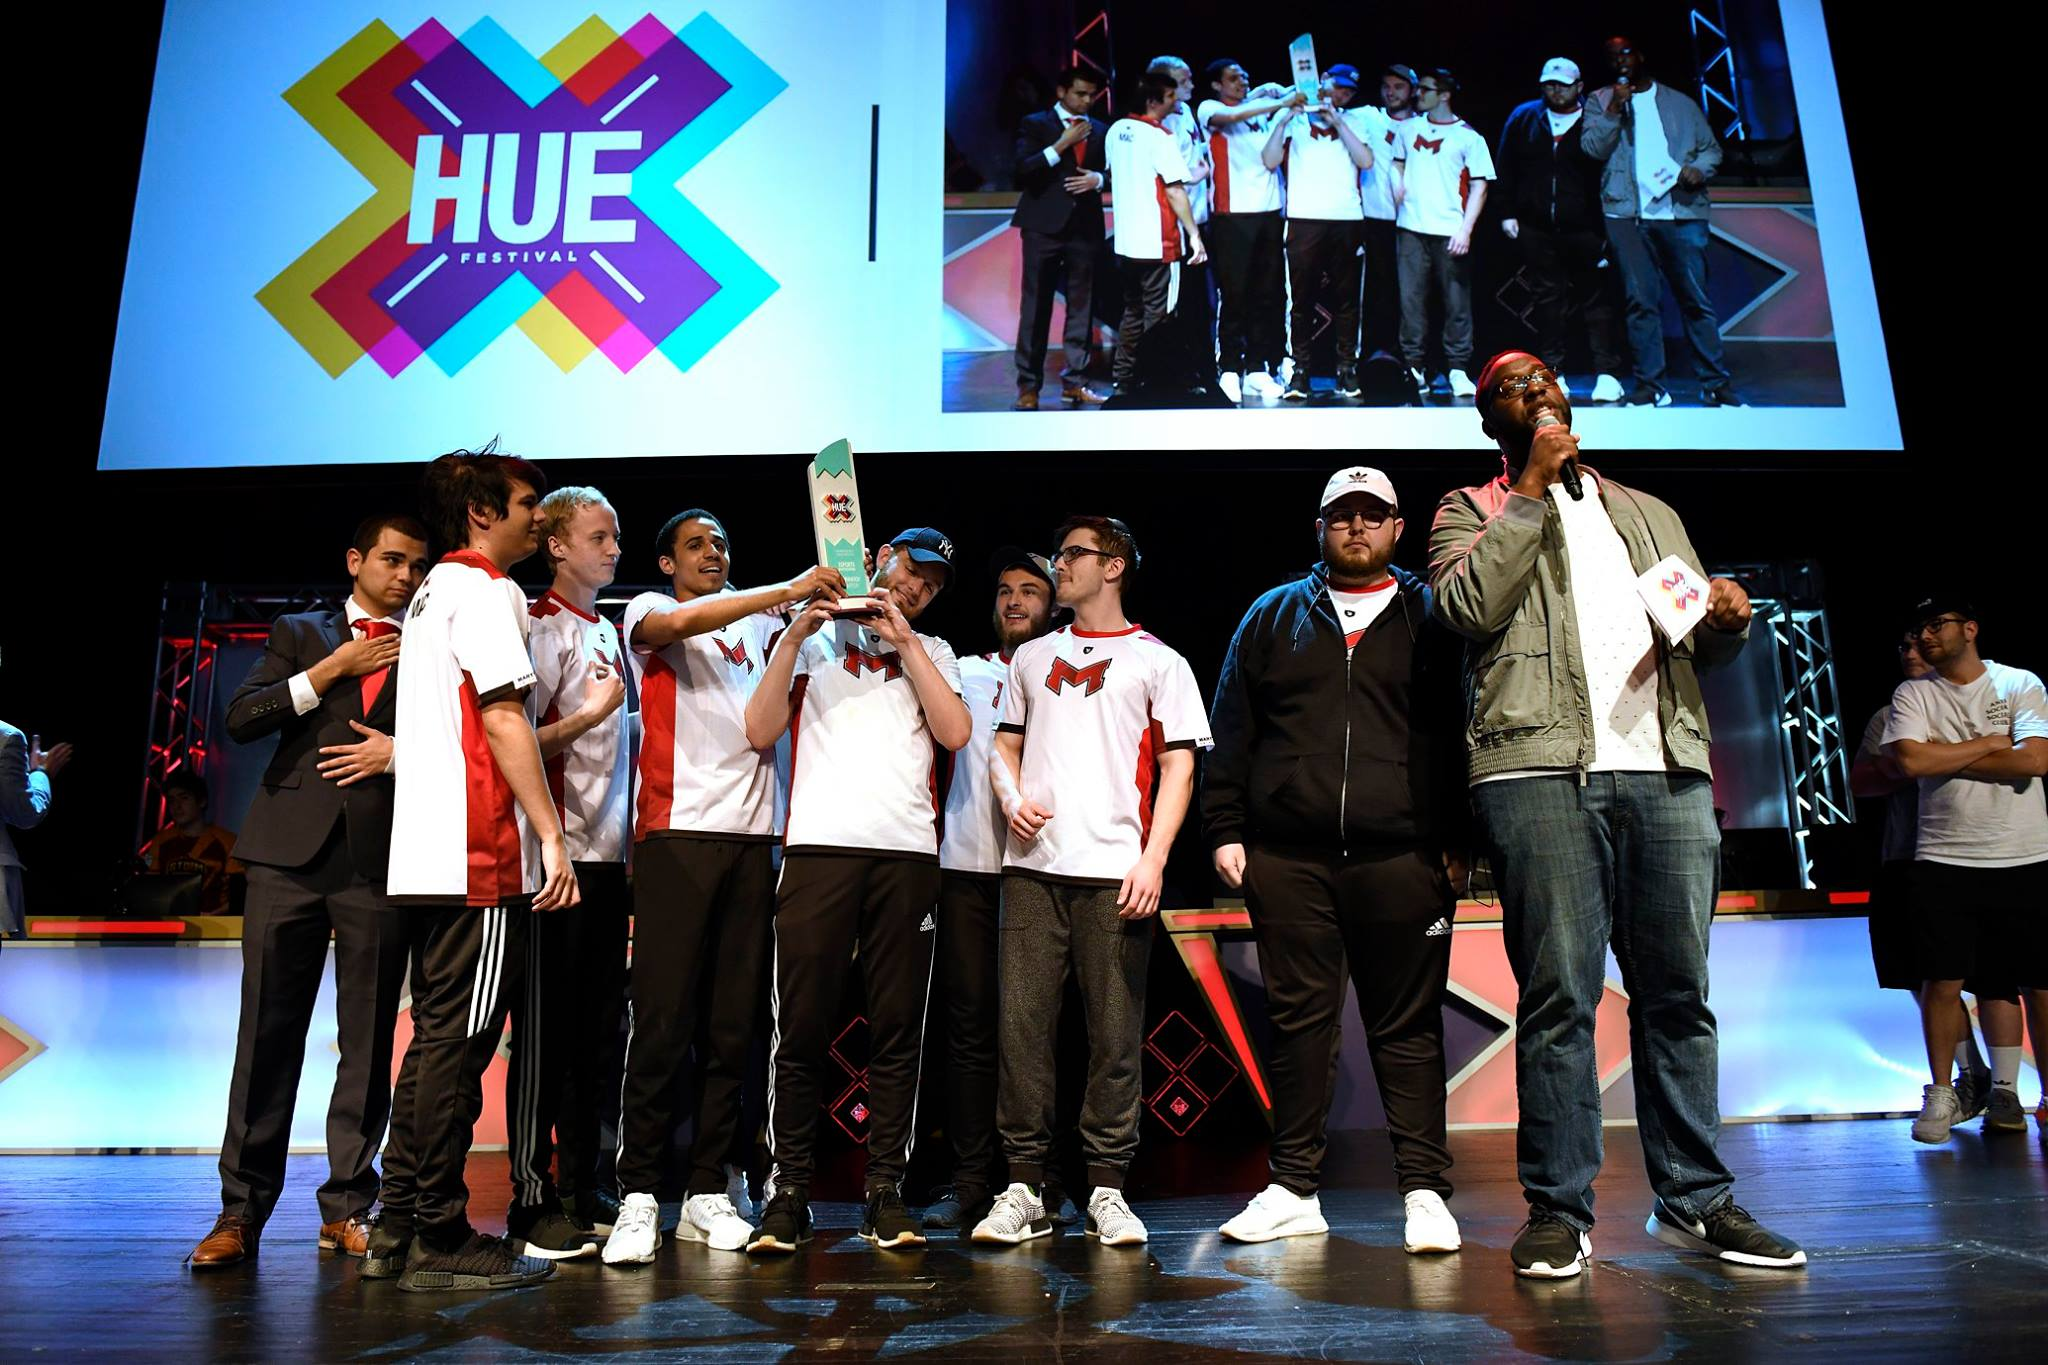 Awarding the HUE Festival Overwatch Champs, Maryville University